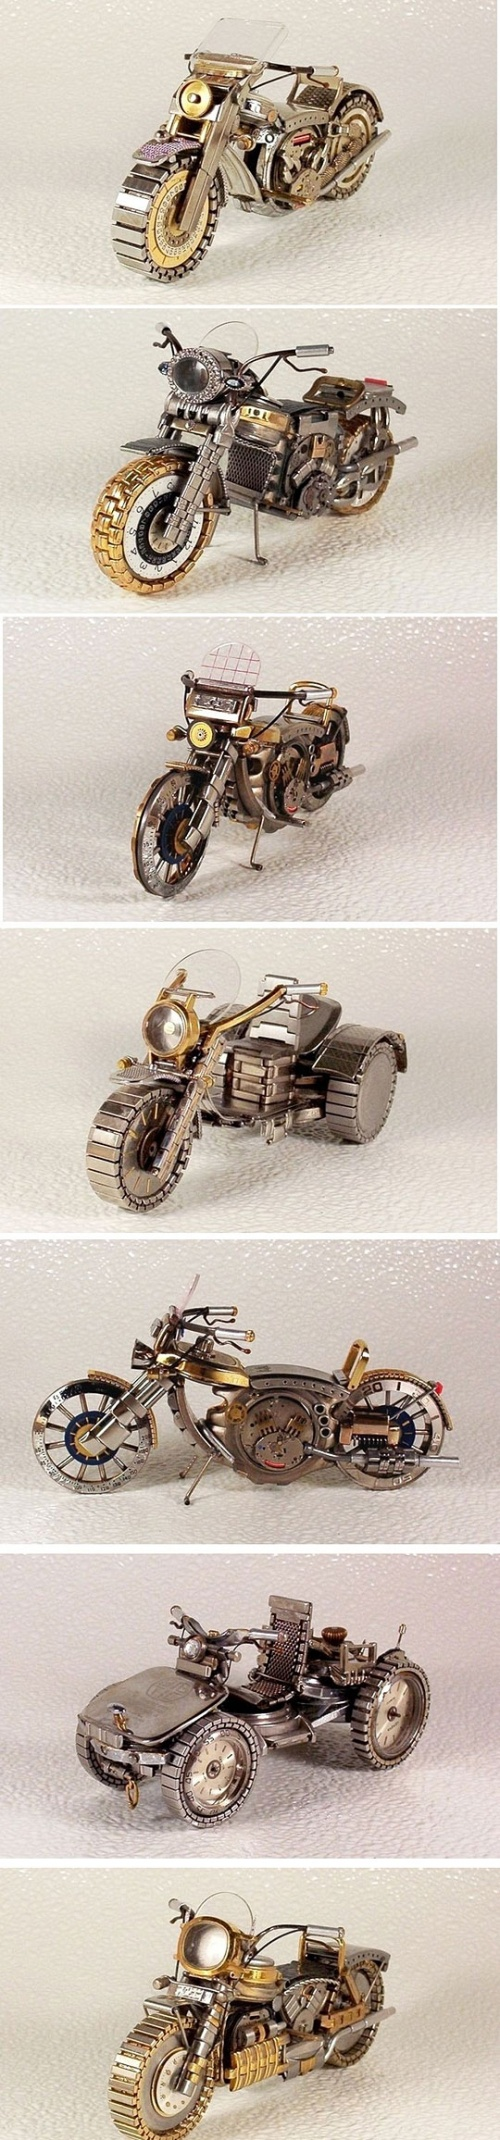 Bikes made from old watches